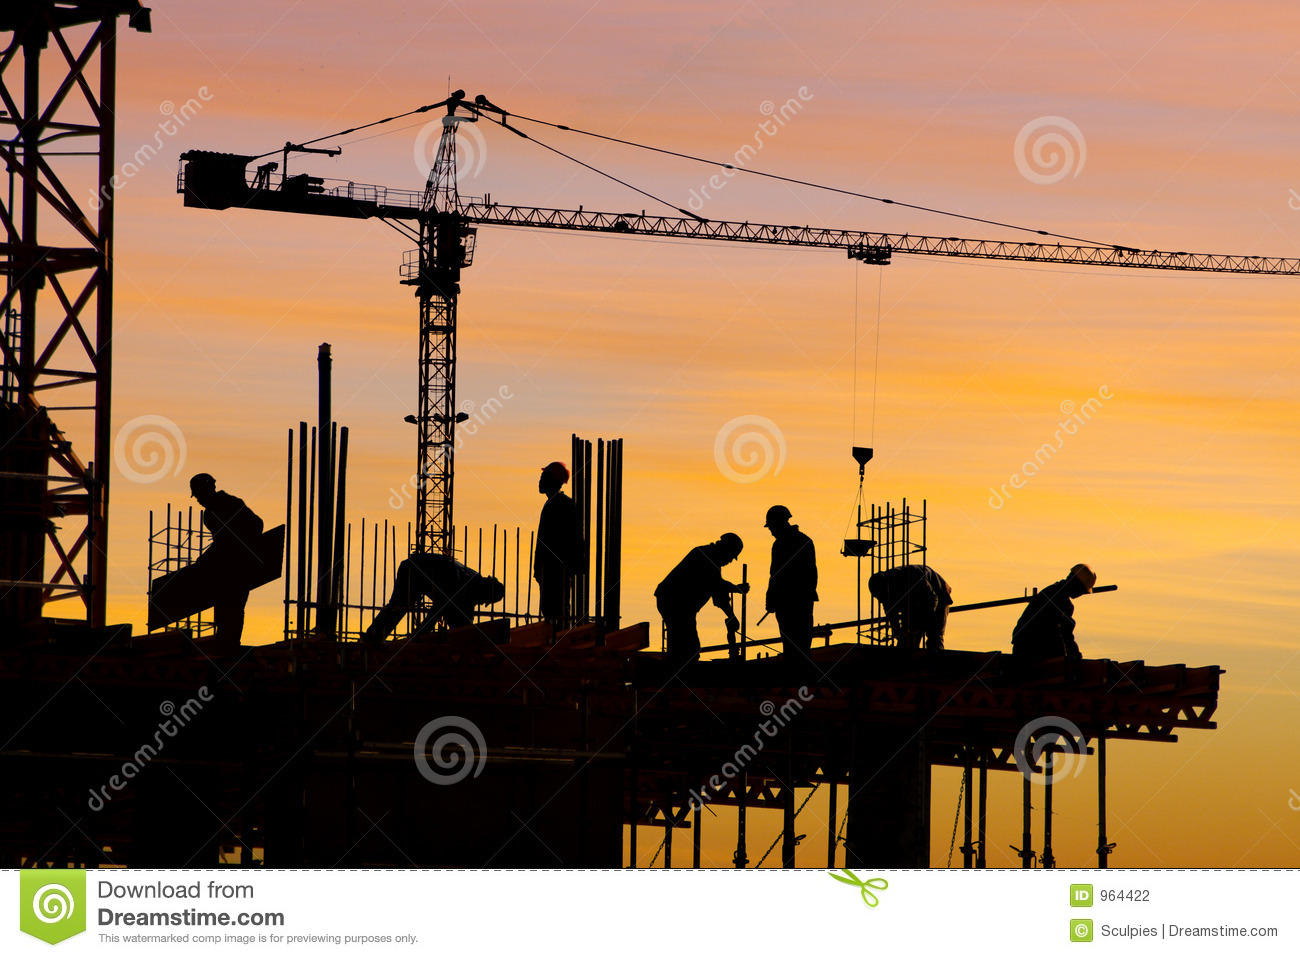 Silhouette de chantier de construction